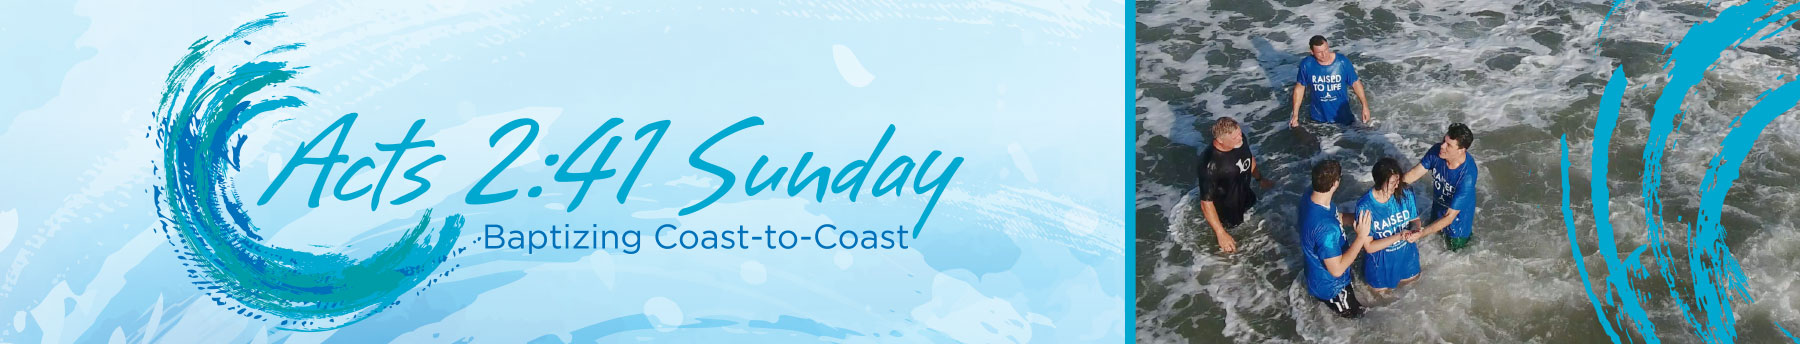 Florida Baptist Convention's Acts 2:41 Sunday • Baptizing Coast-to-Coast